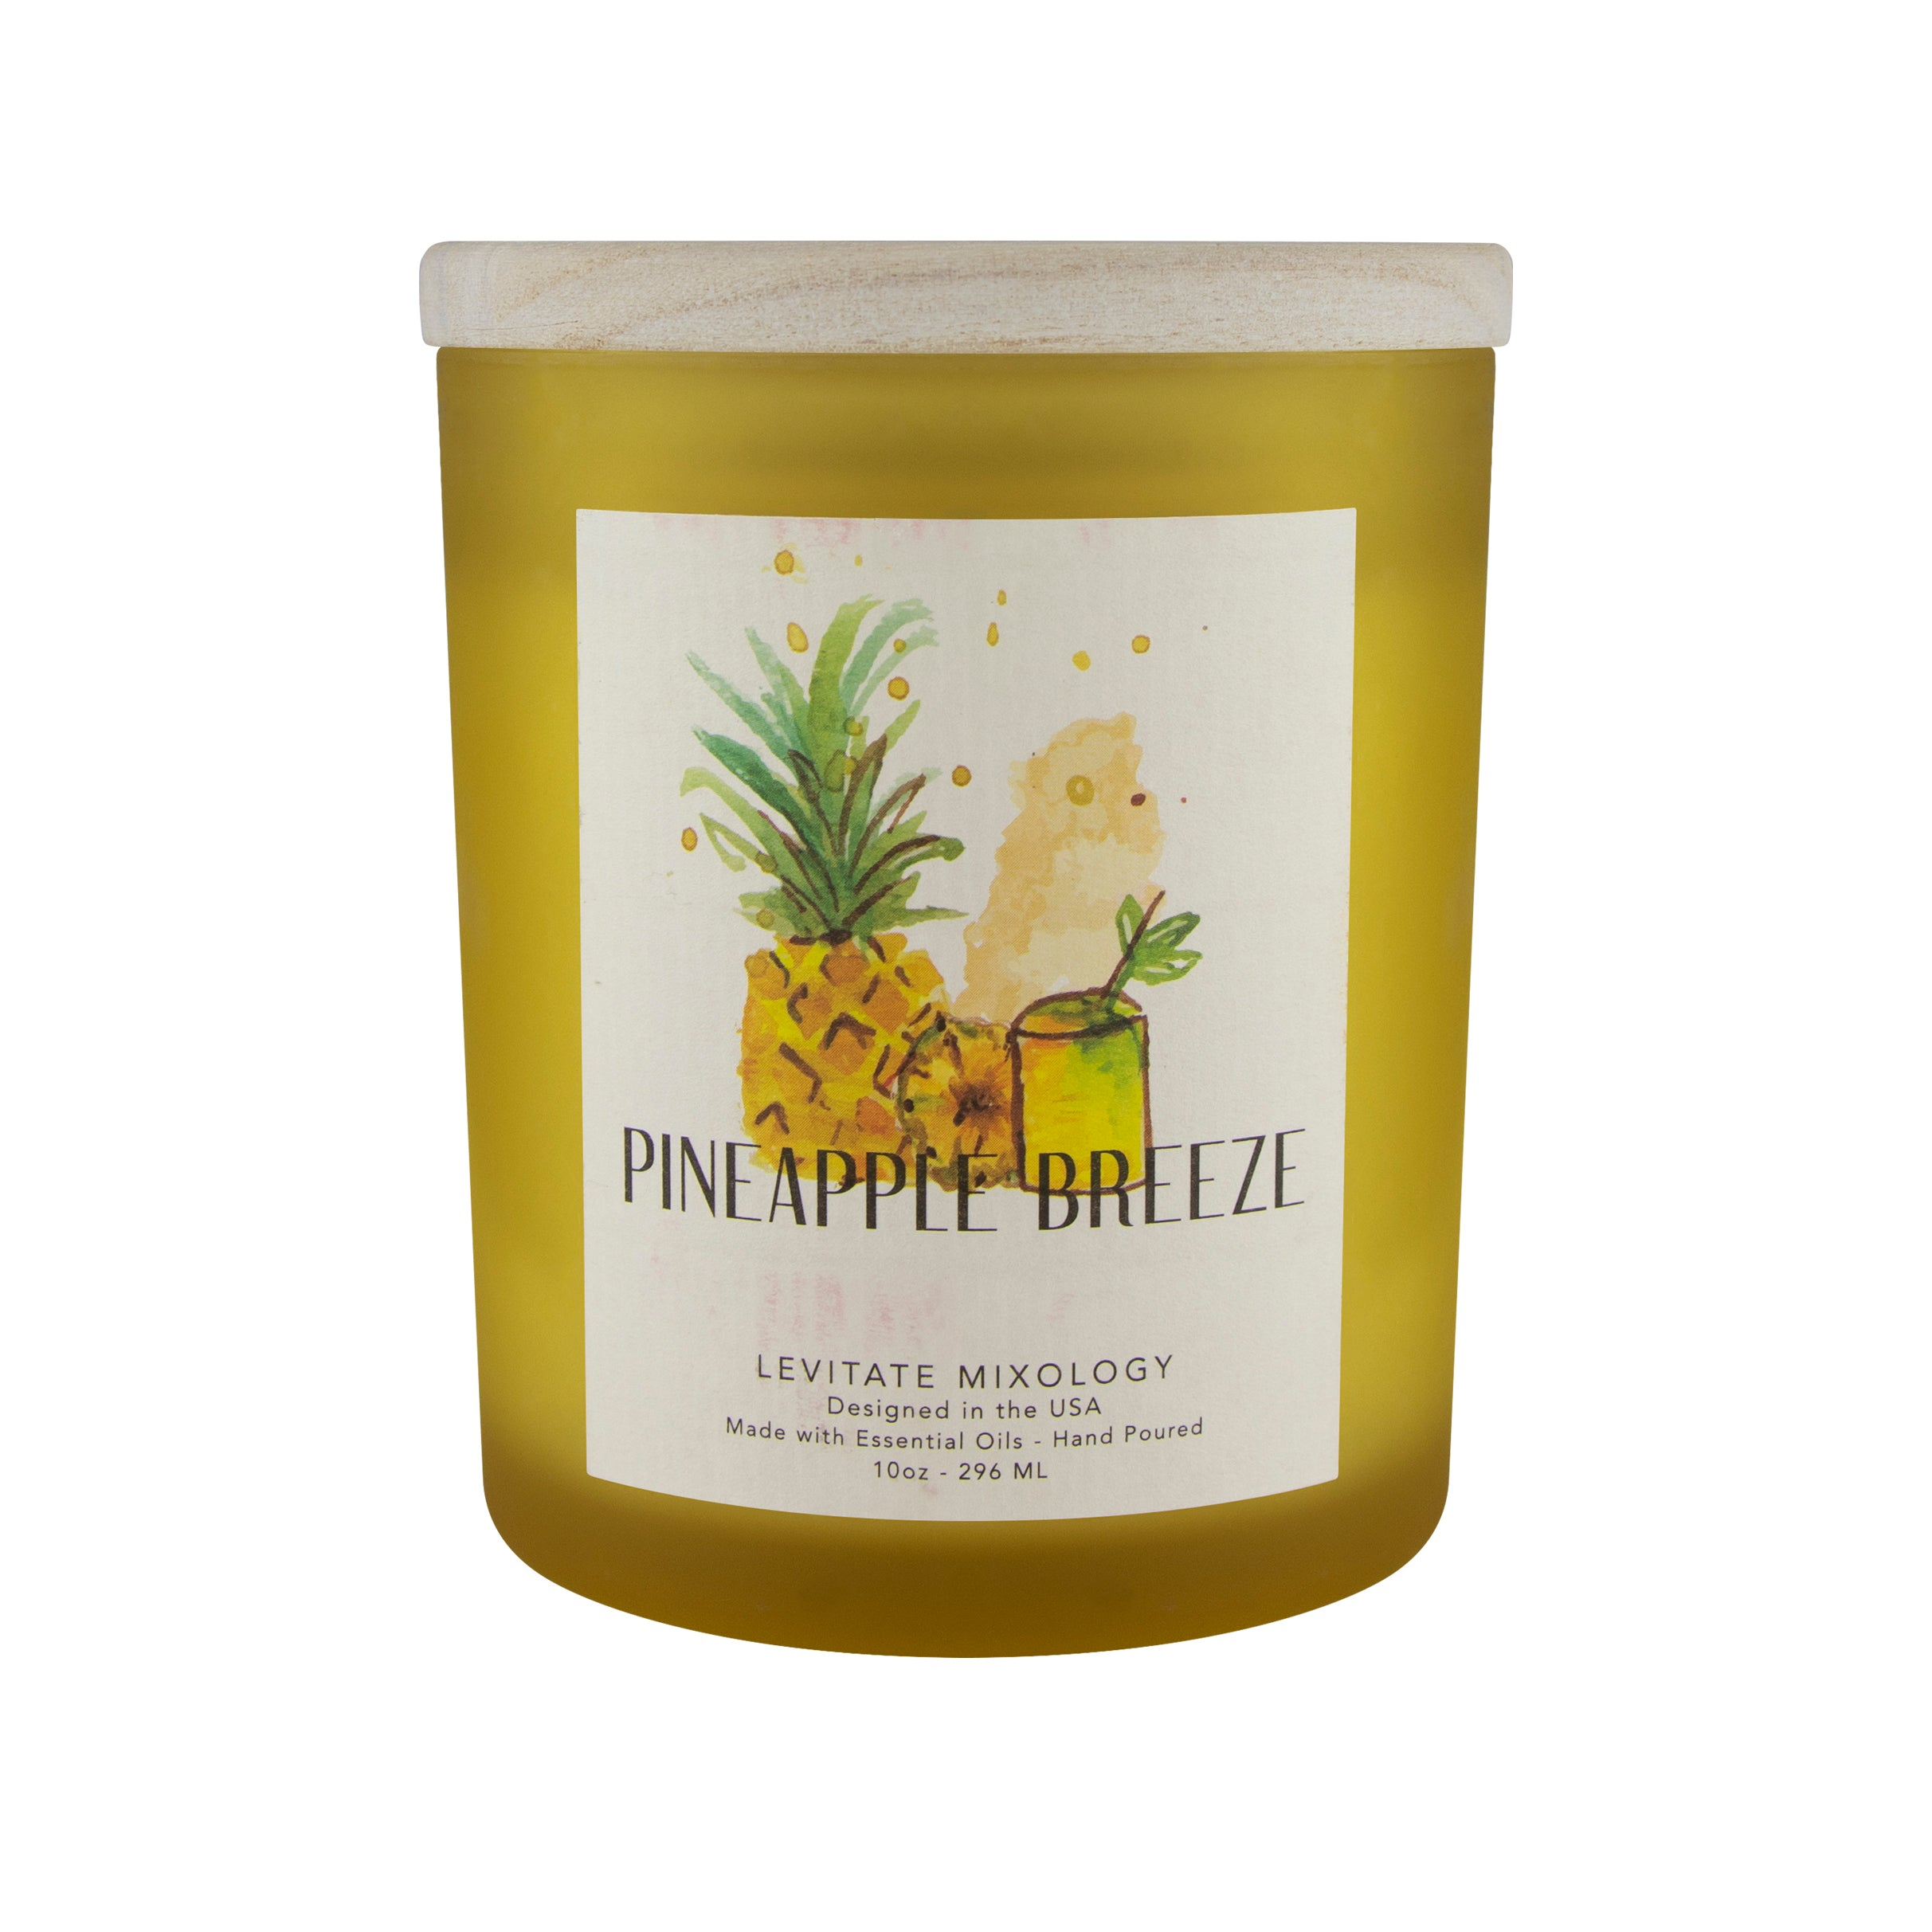 Pineapple Breeze Single Wick Candle